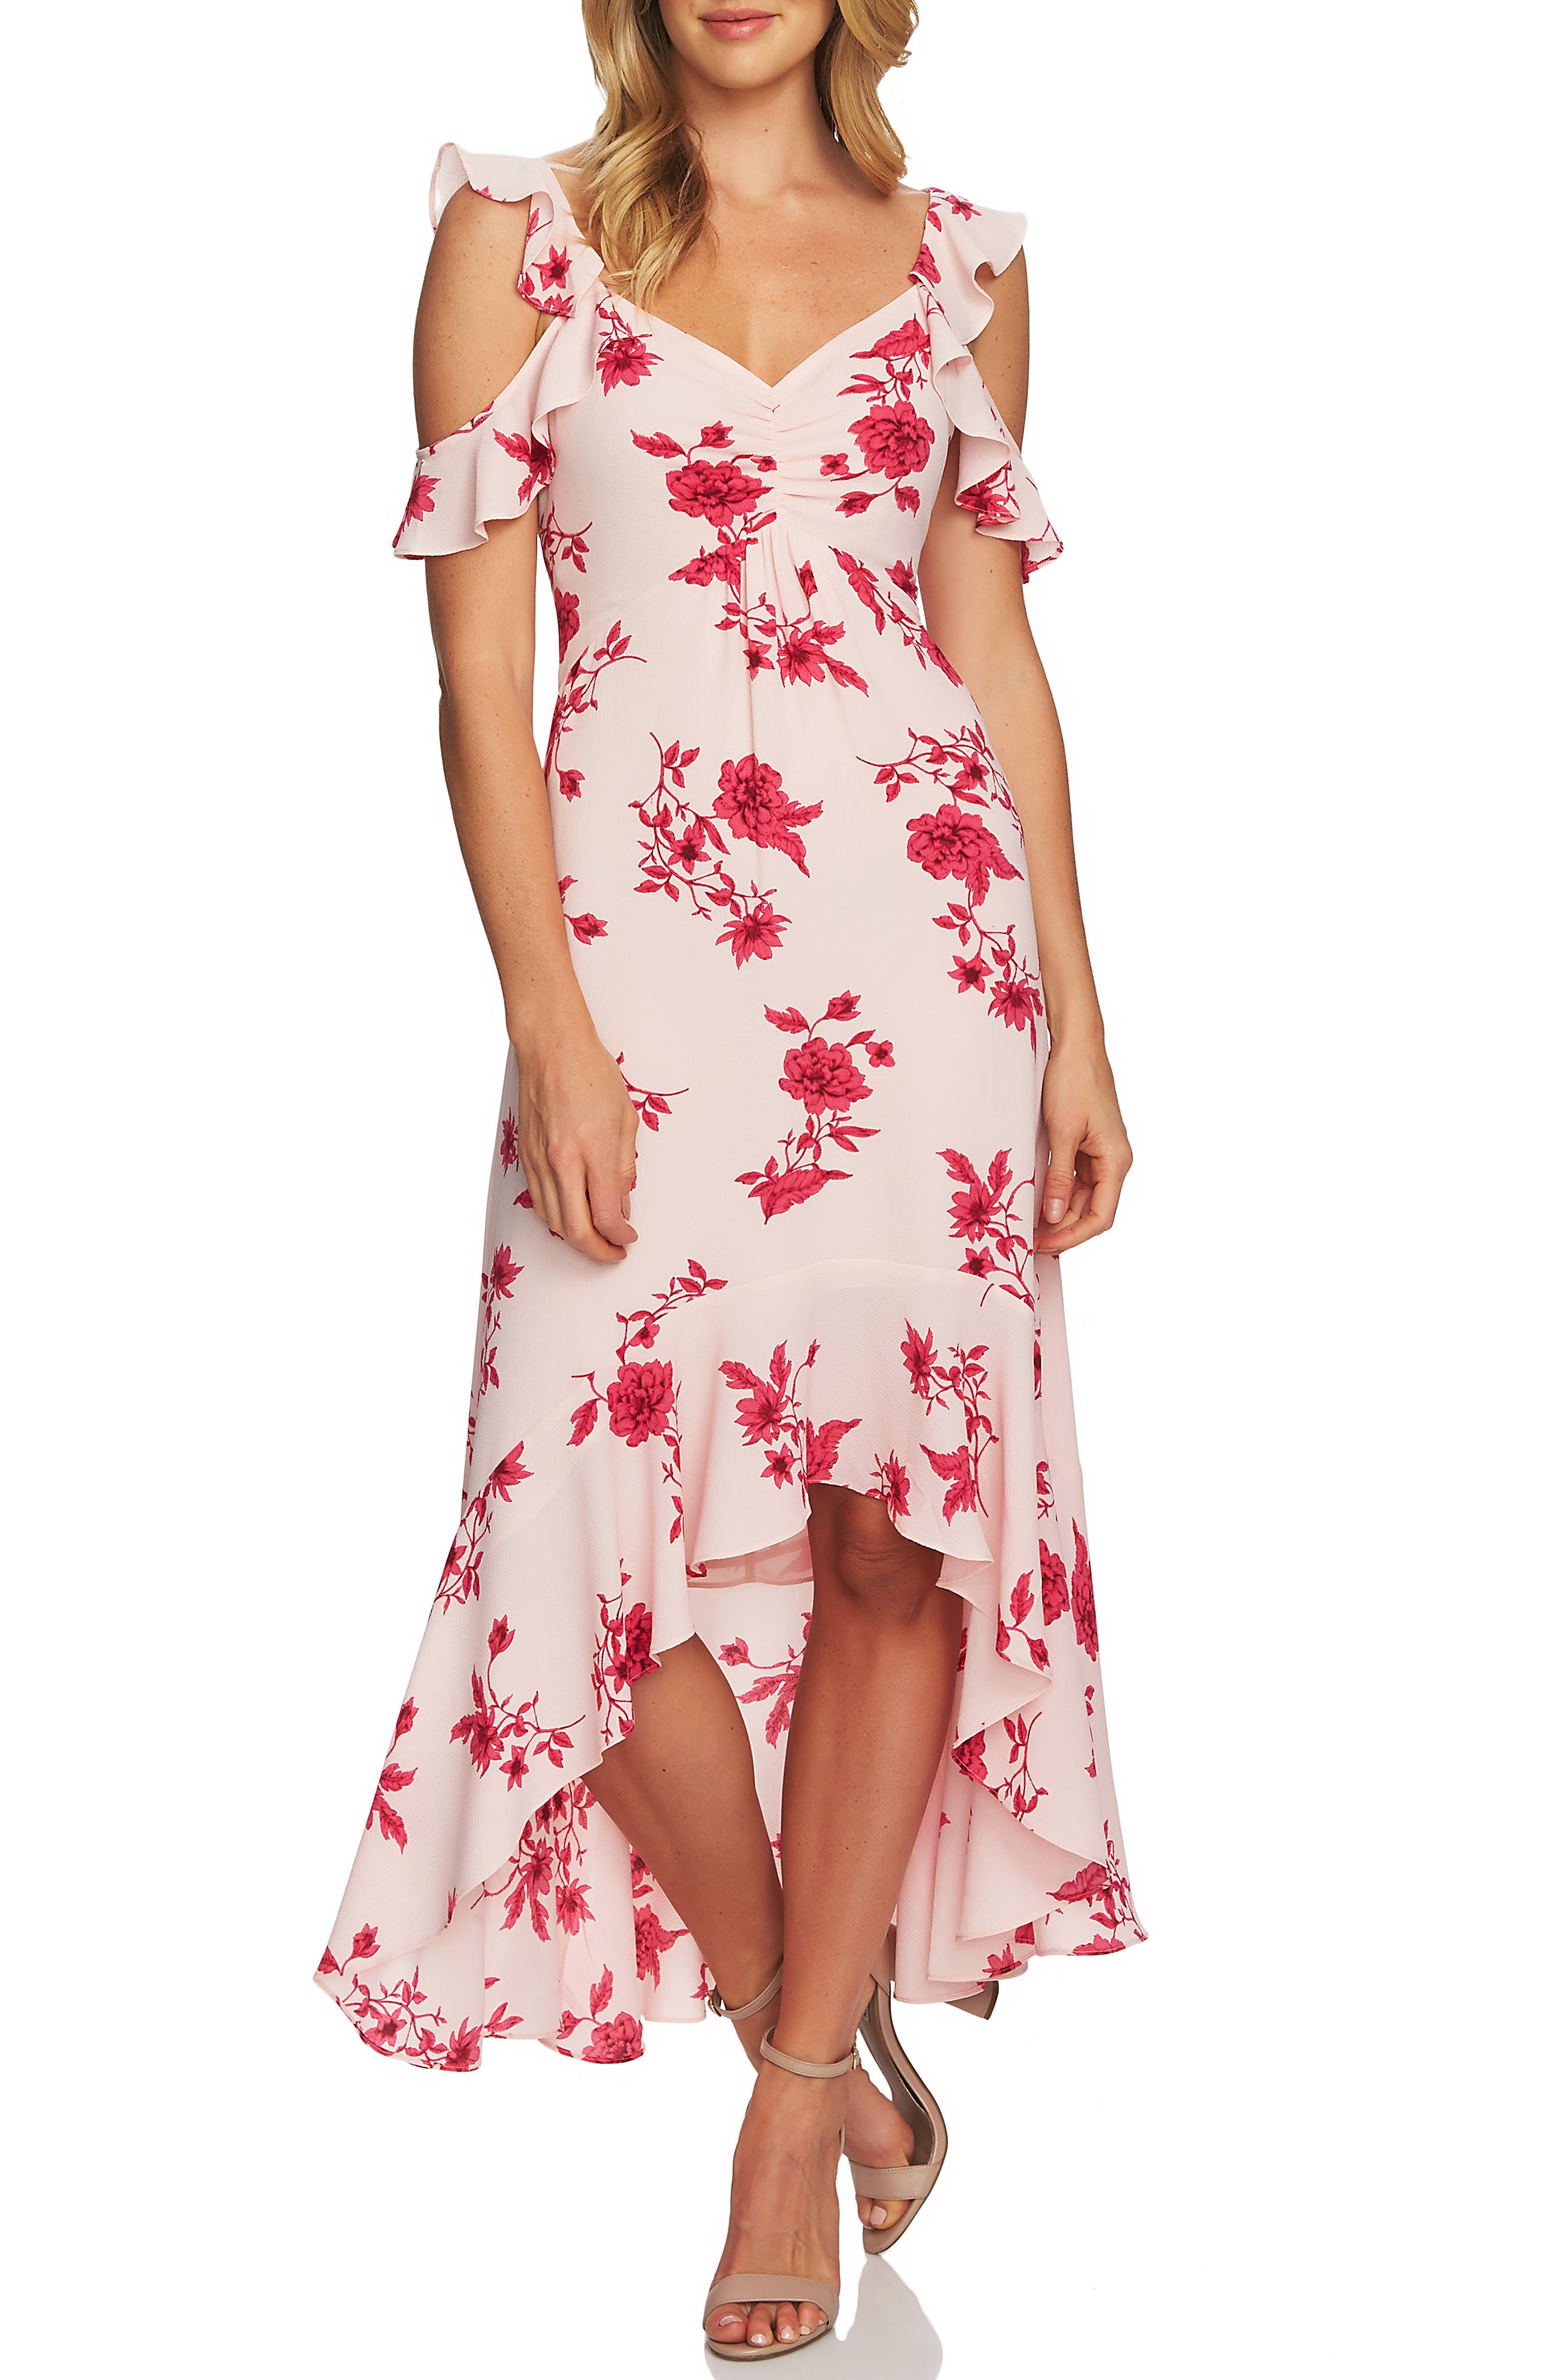 Cece Etched Floral High/low Midi Dress, Pink